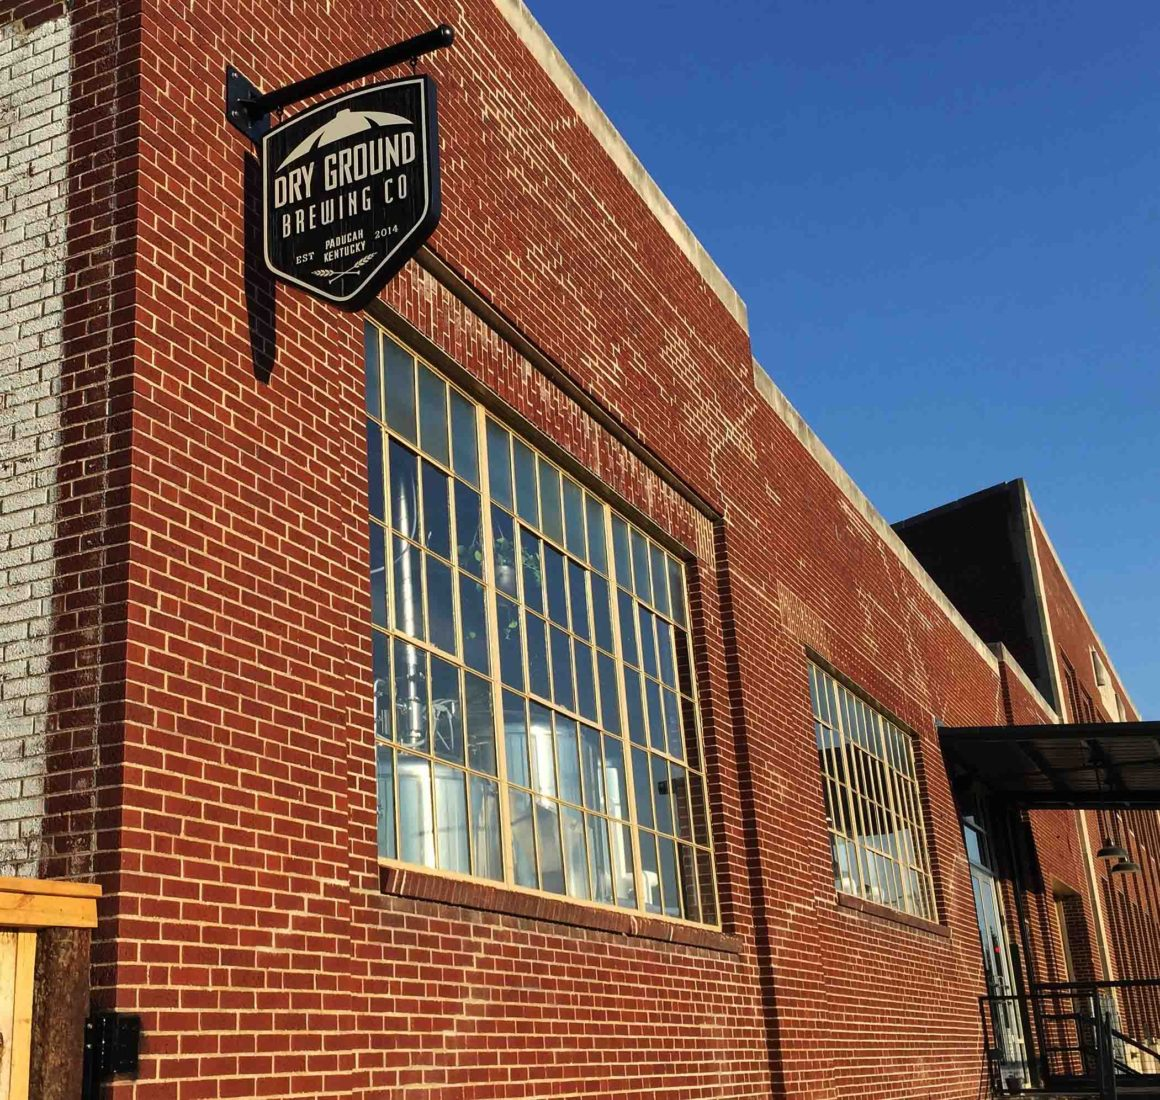 237. Dry Ground Brewing Co., Paducah KY 2015